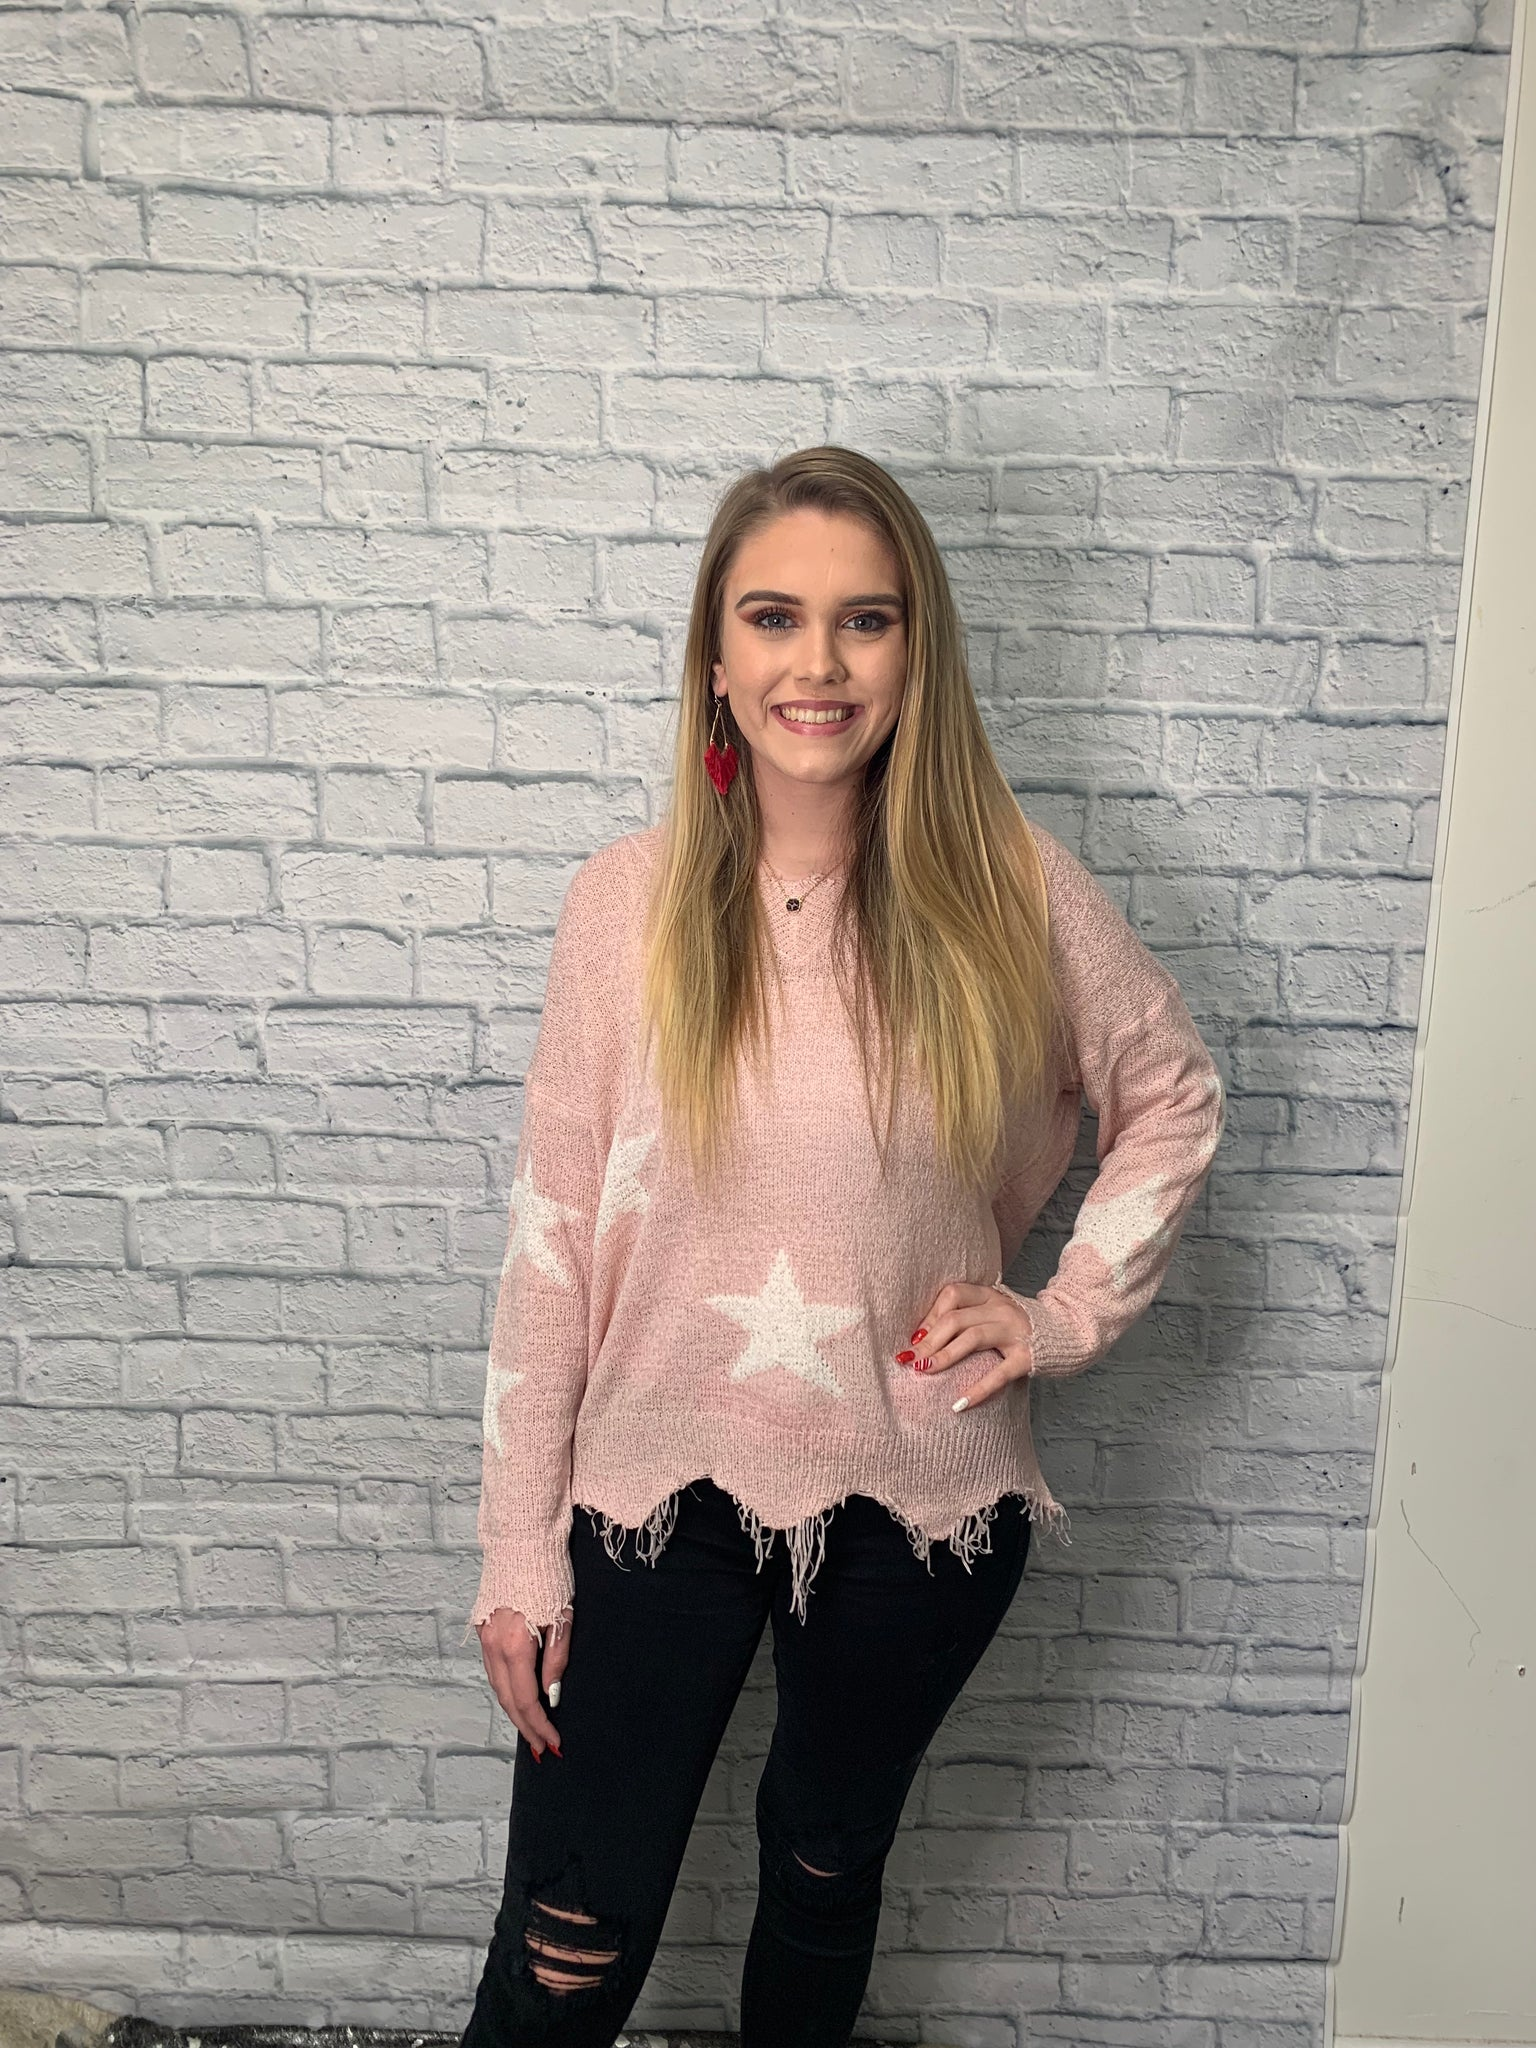 Aliah Frayed Star Sweater - brookesshop